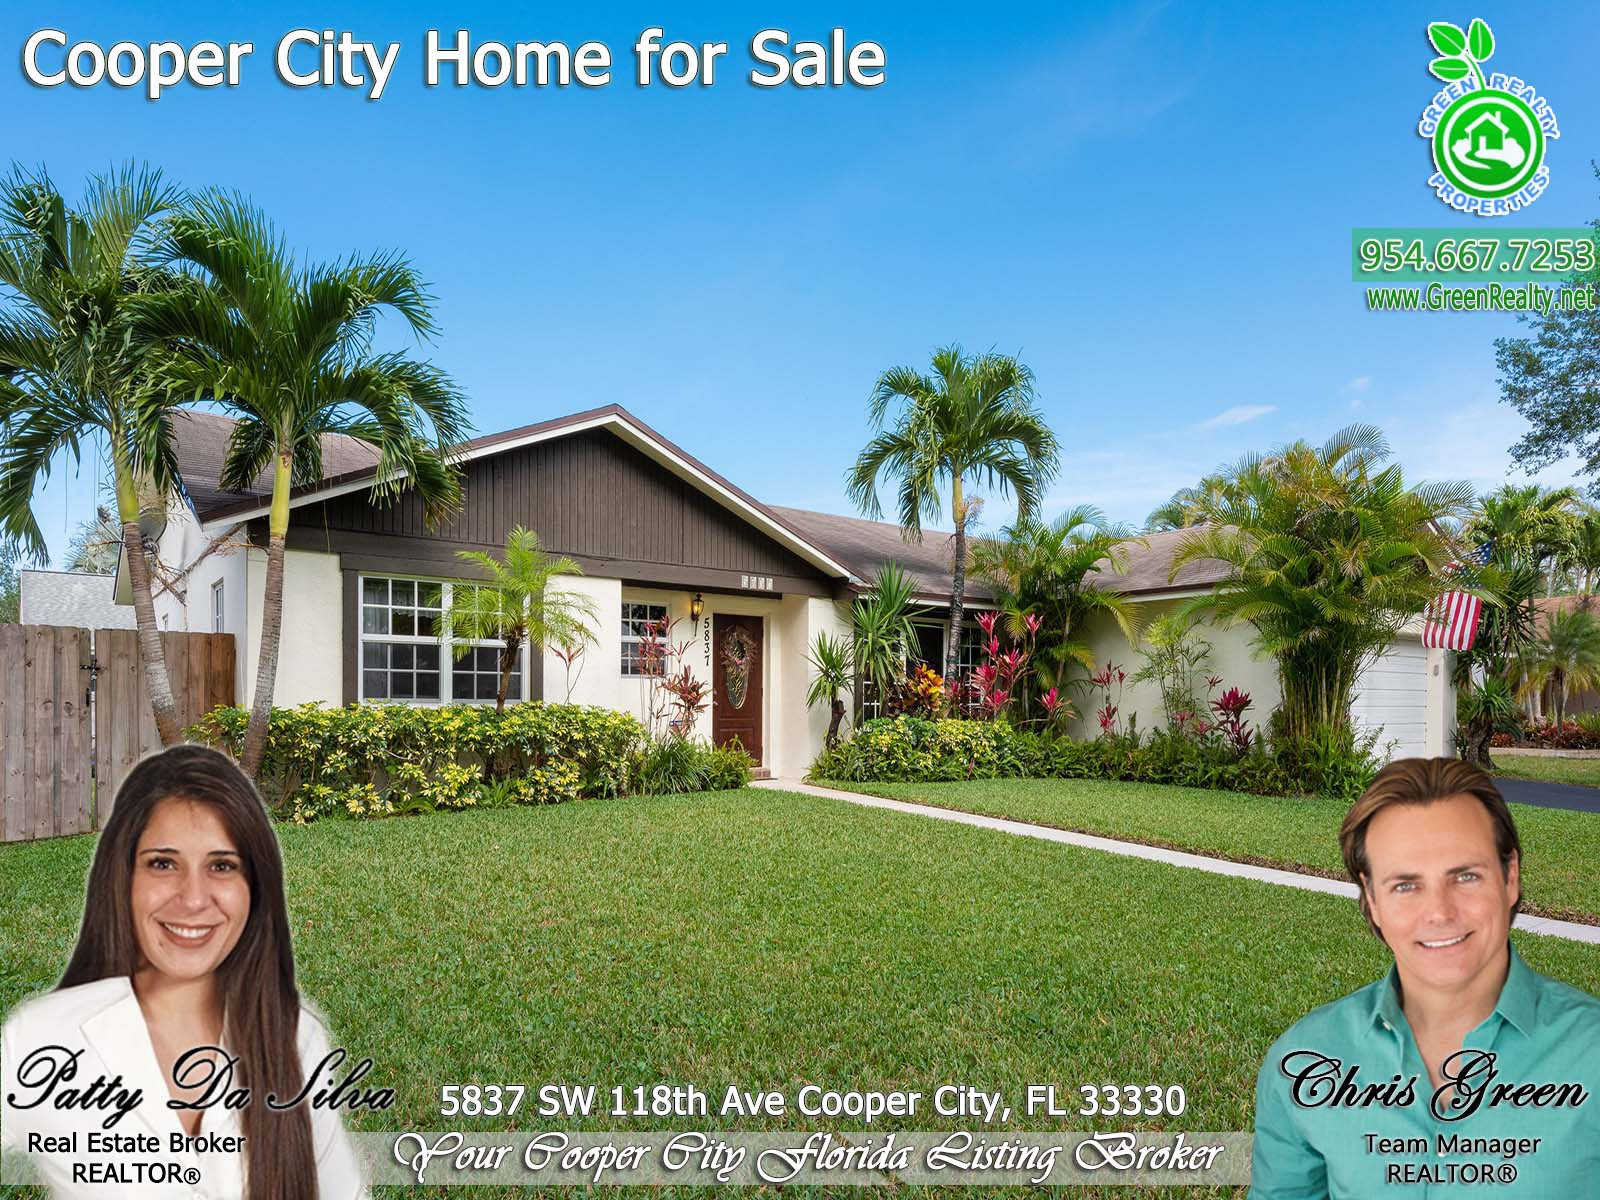 21 Cooper City Home For Sale 21 (3)